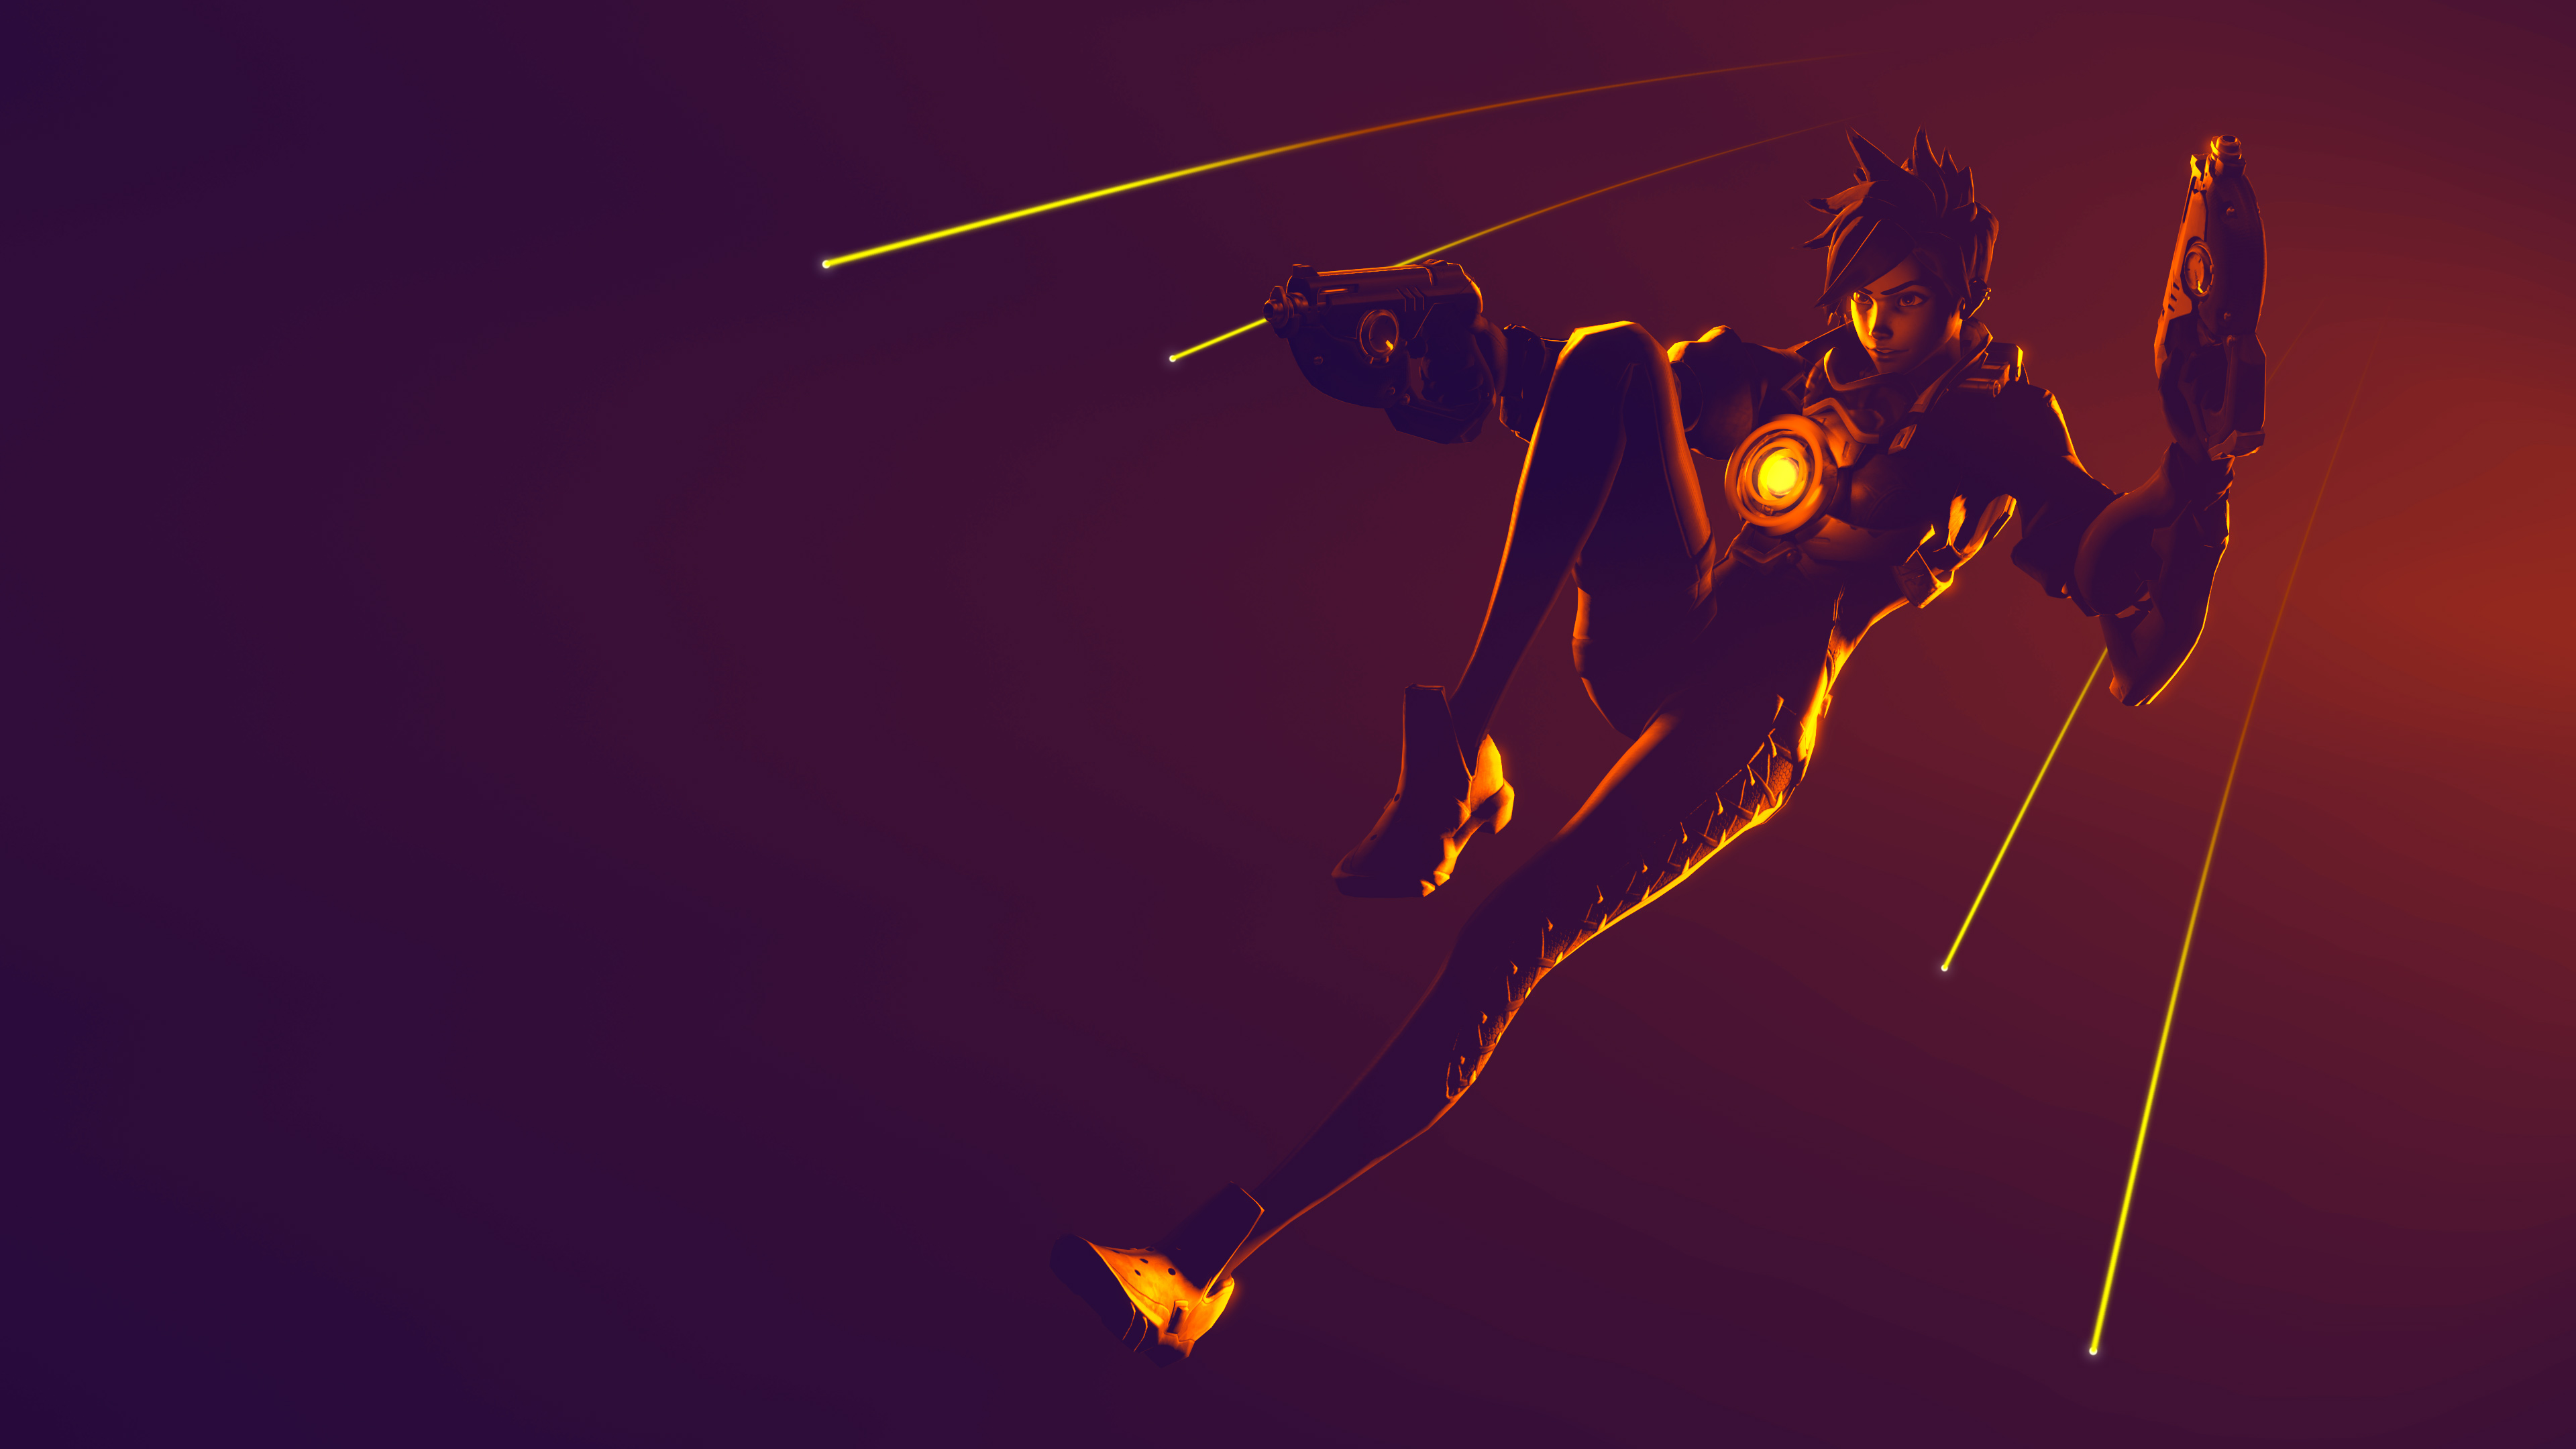 Awesome Wallpapers In 3840x2160 Ultra Hd 4k Resolution Posted By Ryan Johnson